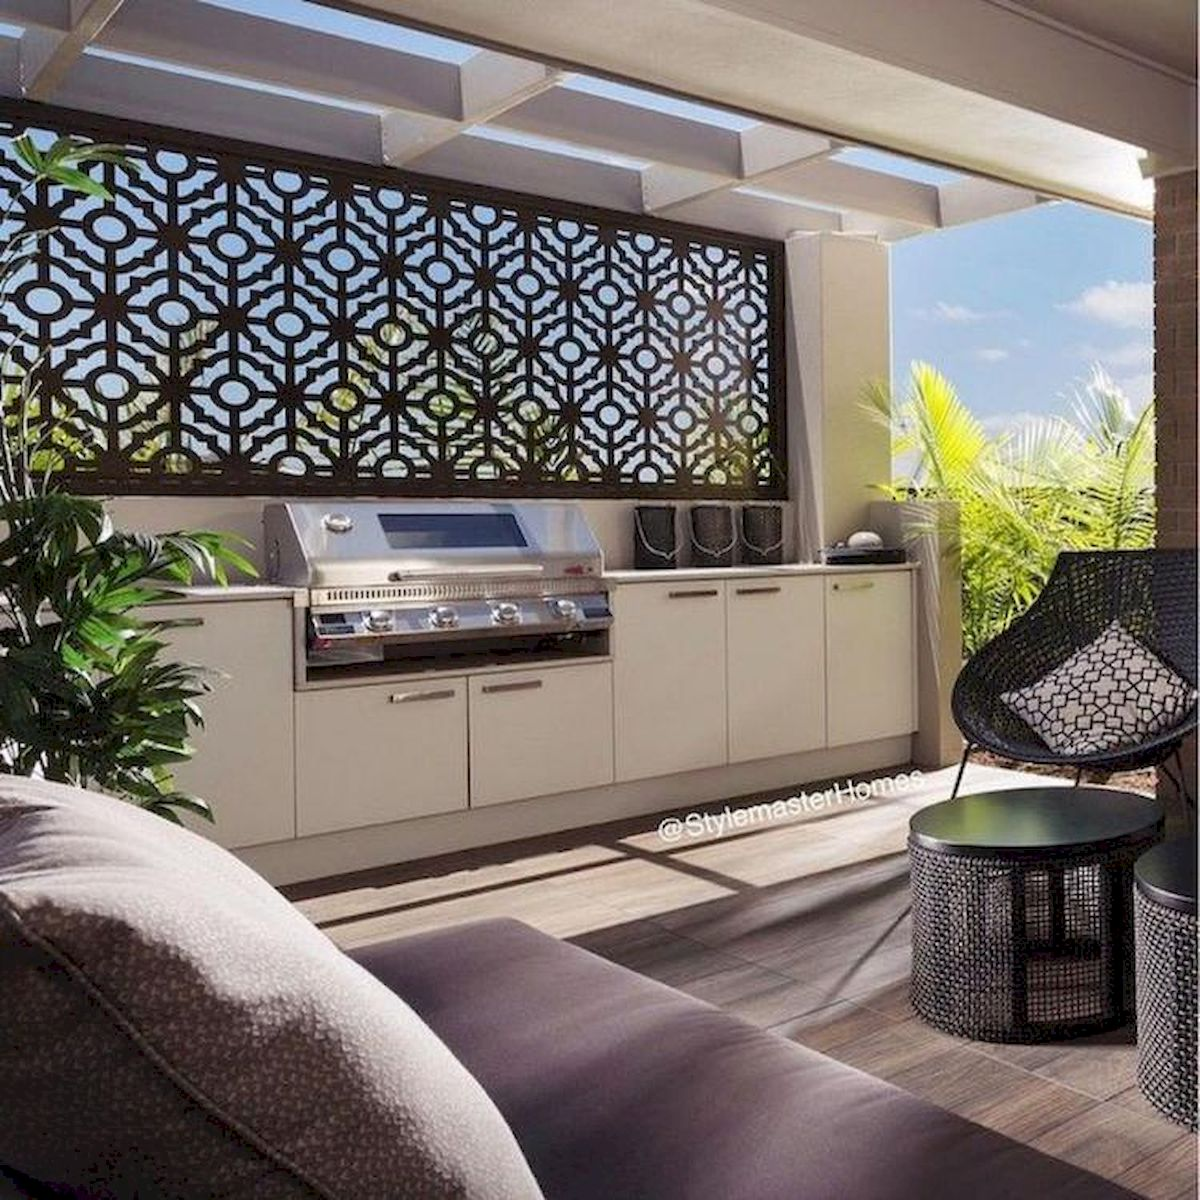 60 Awesome Backyard Privacy Design and Decor Ideas (3)